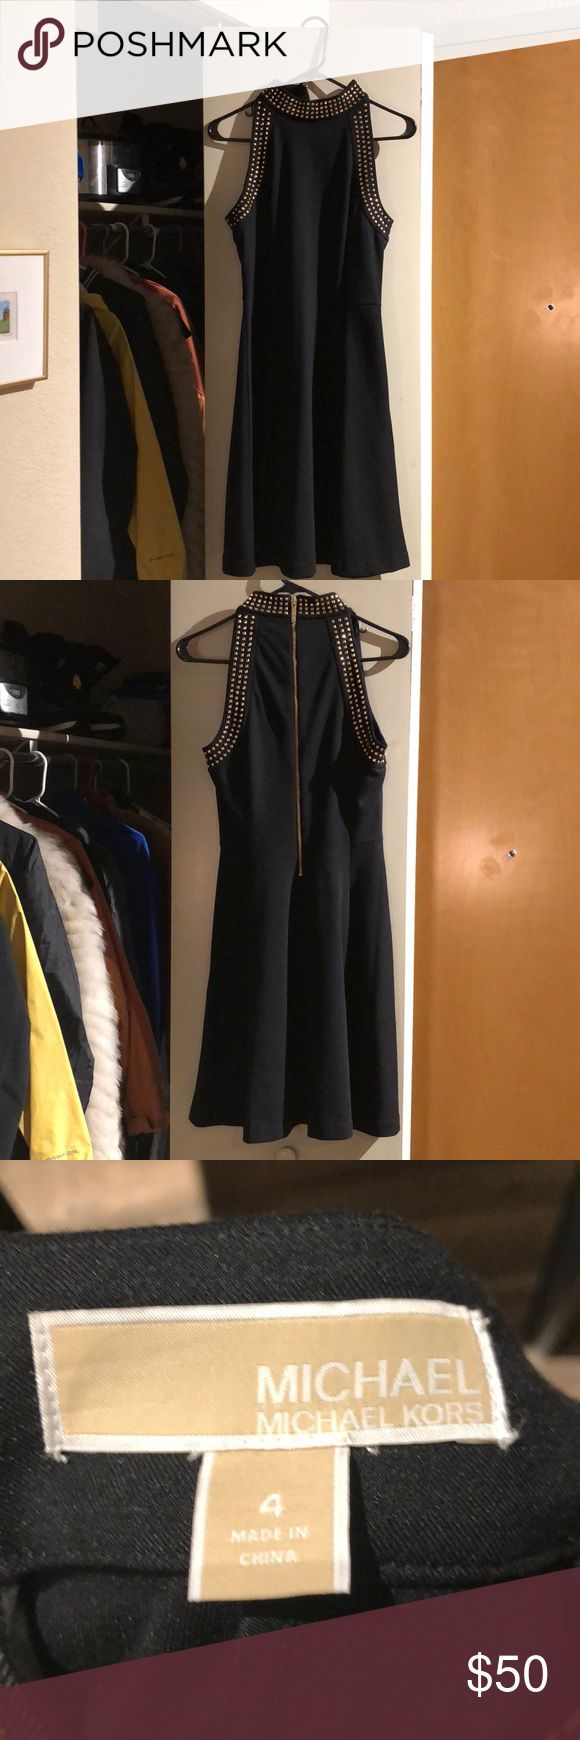 Women's Size 4 Michael Kors Dress Never worn! Gorgeous black and gold studded party dress. Knee length. Zip up back. MICHAEL Michael Kors Dresses Midi